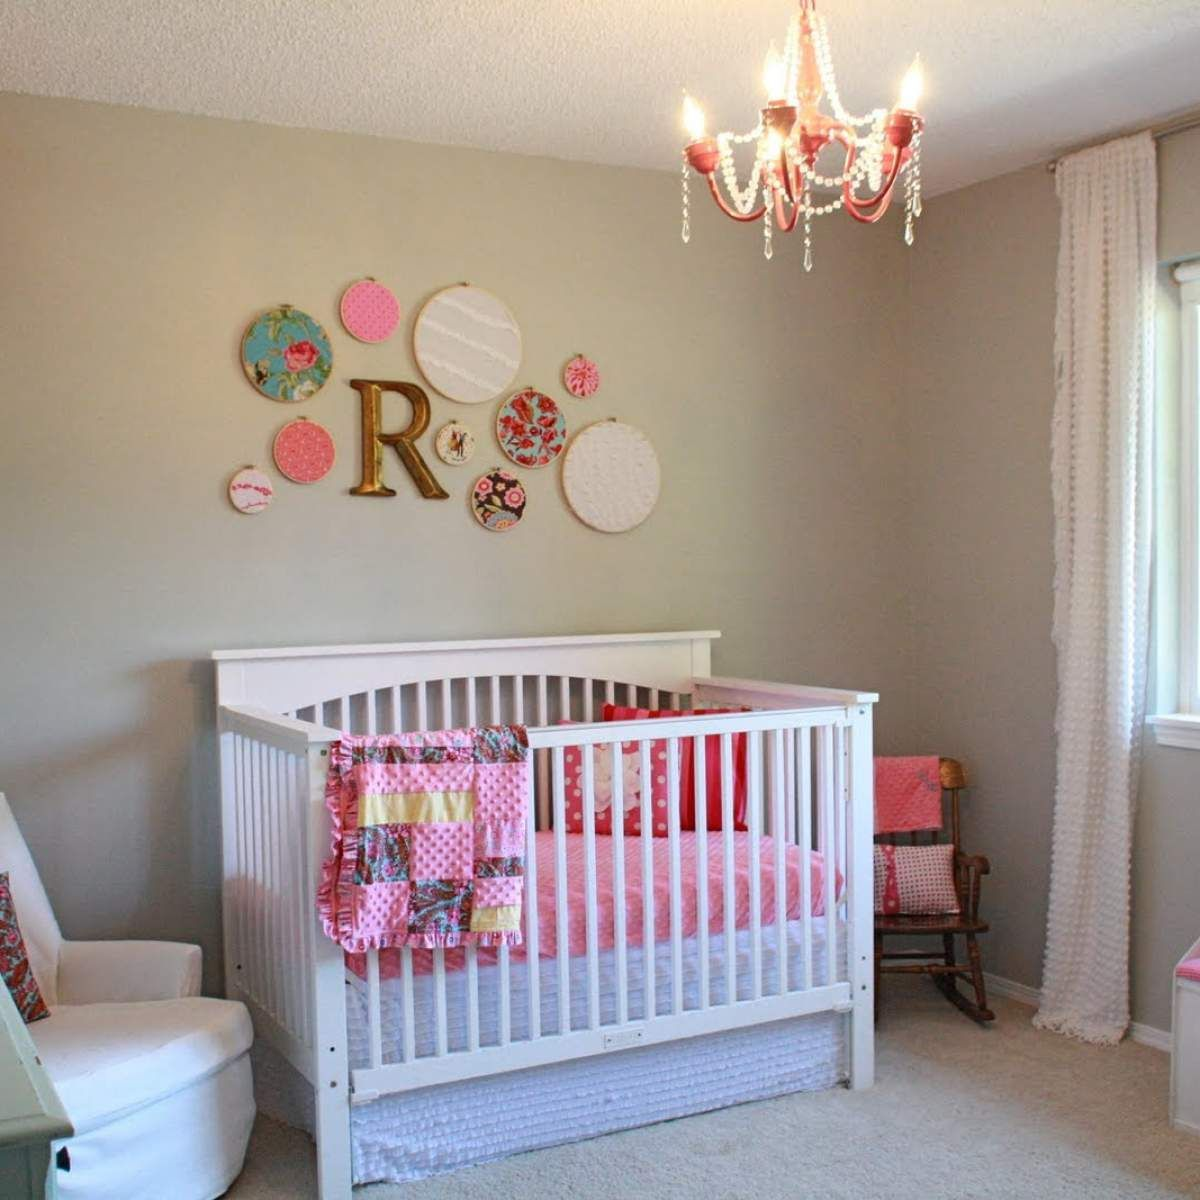 2019 Baby Room Decoration Items   Best Home Furniture Check More At Http://